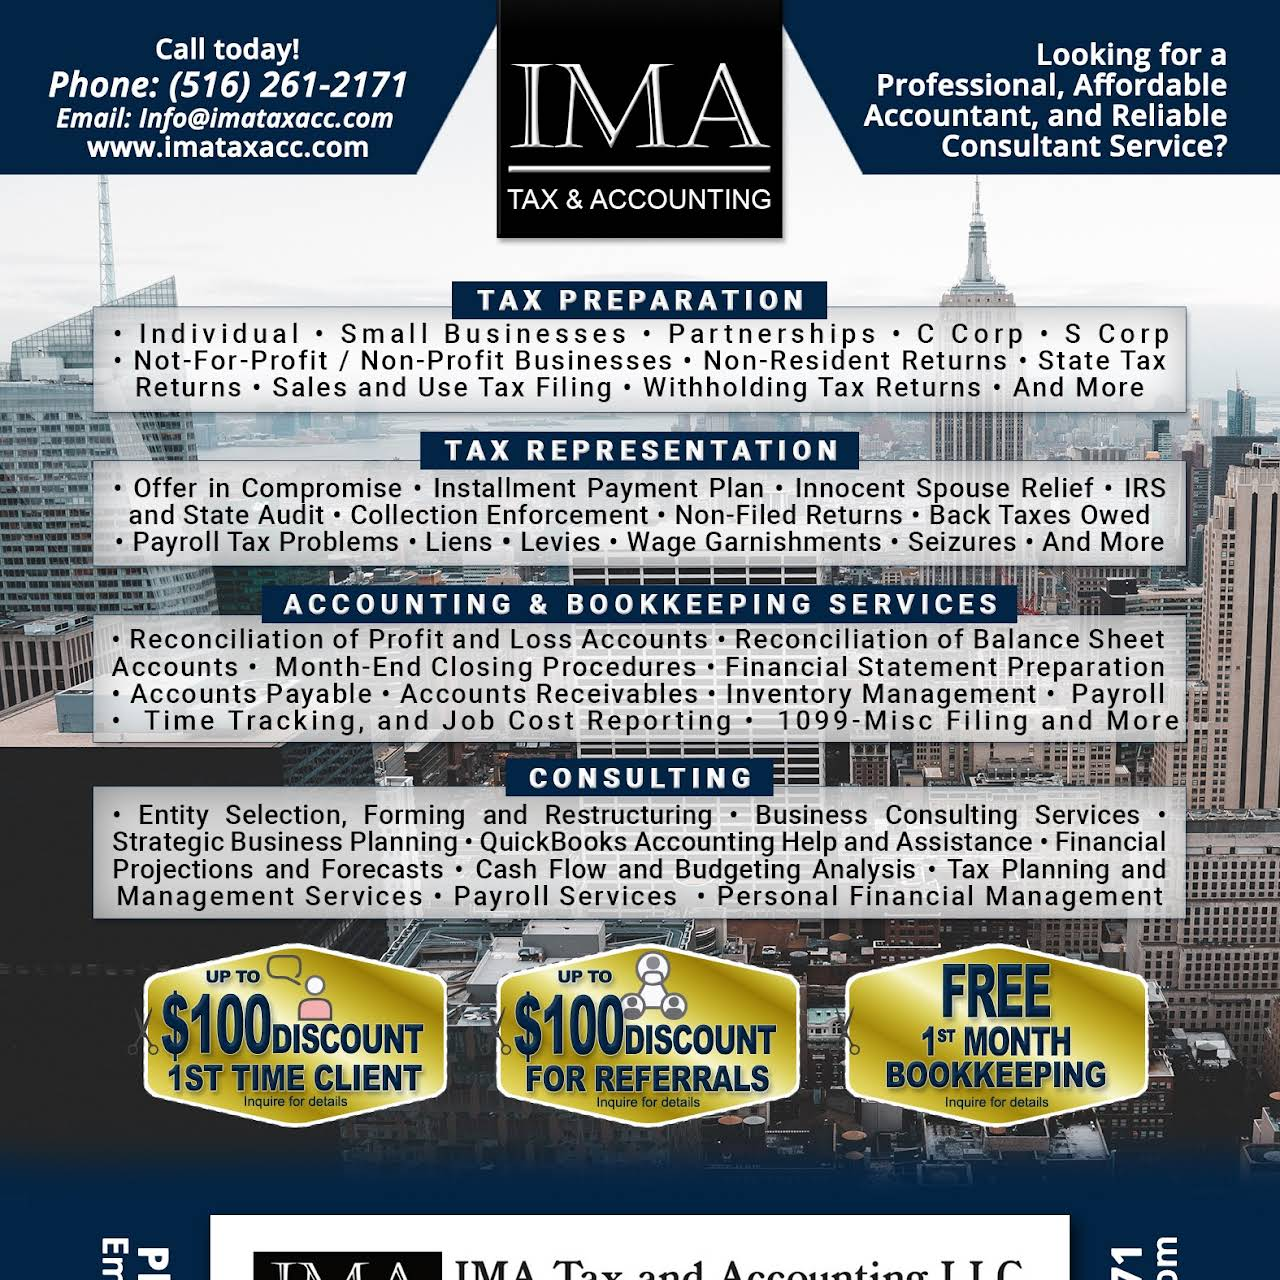 IMA Tax and Accounting LLC - Accounting Firm in Uniondale